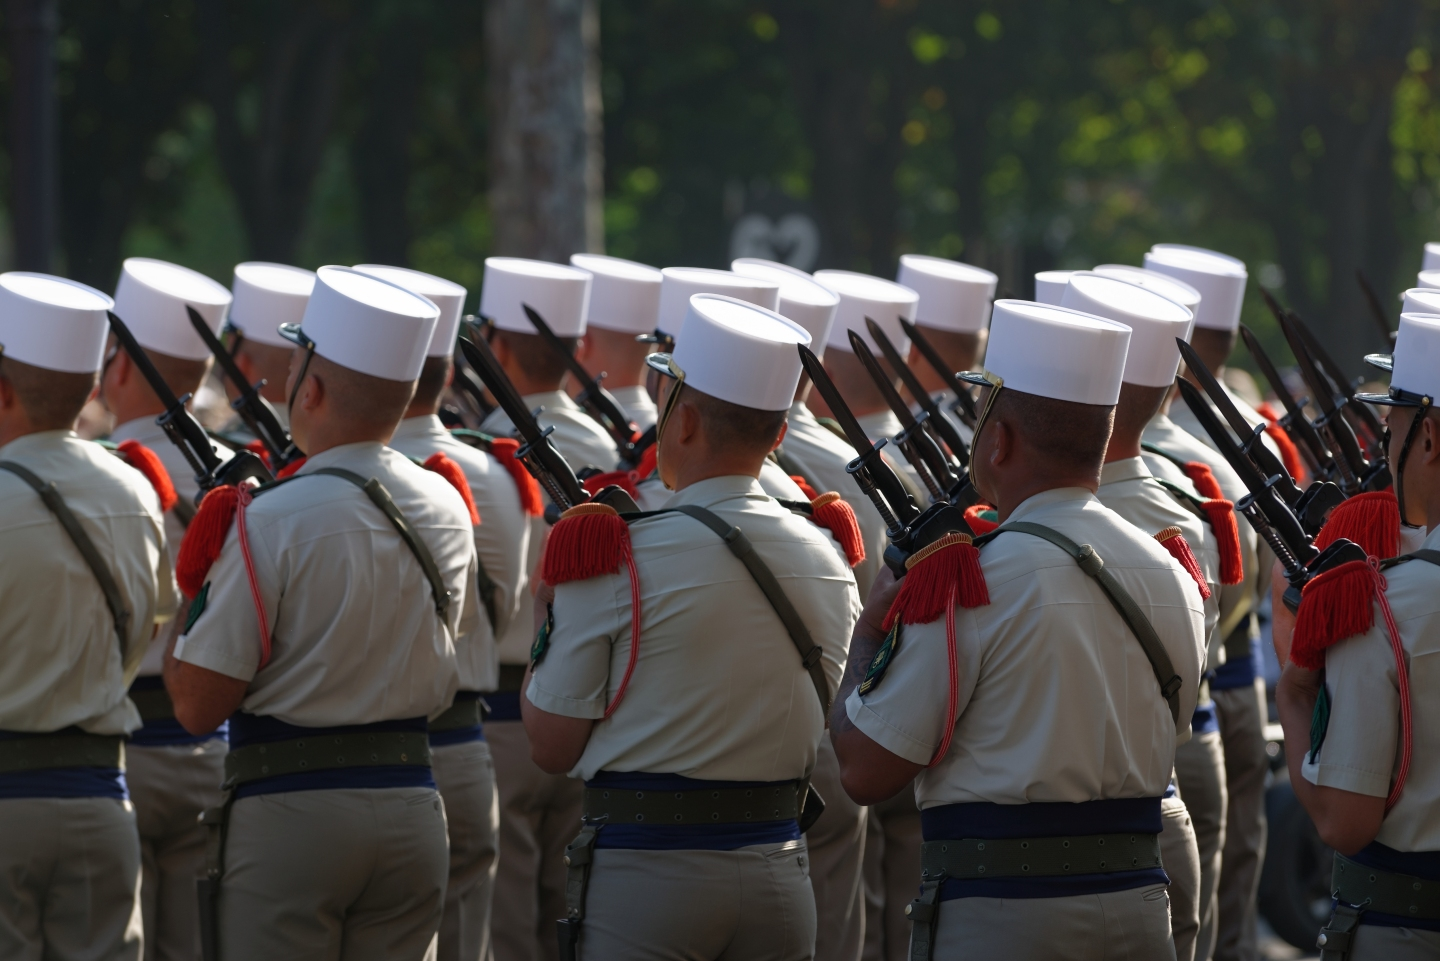 Men of the French Foreign Legion at the Bastille Day 2013 military parade on the Champs-Élysées in Paris.